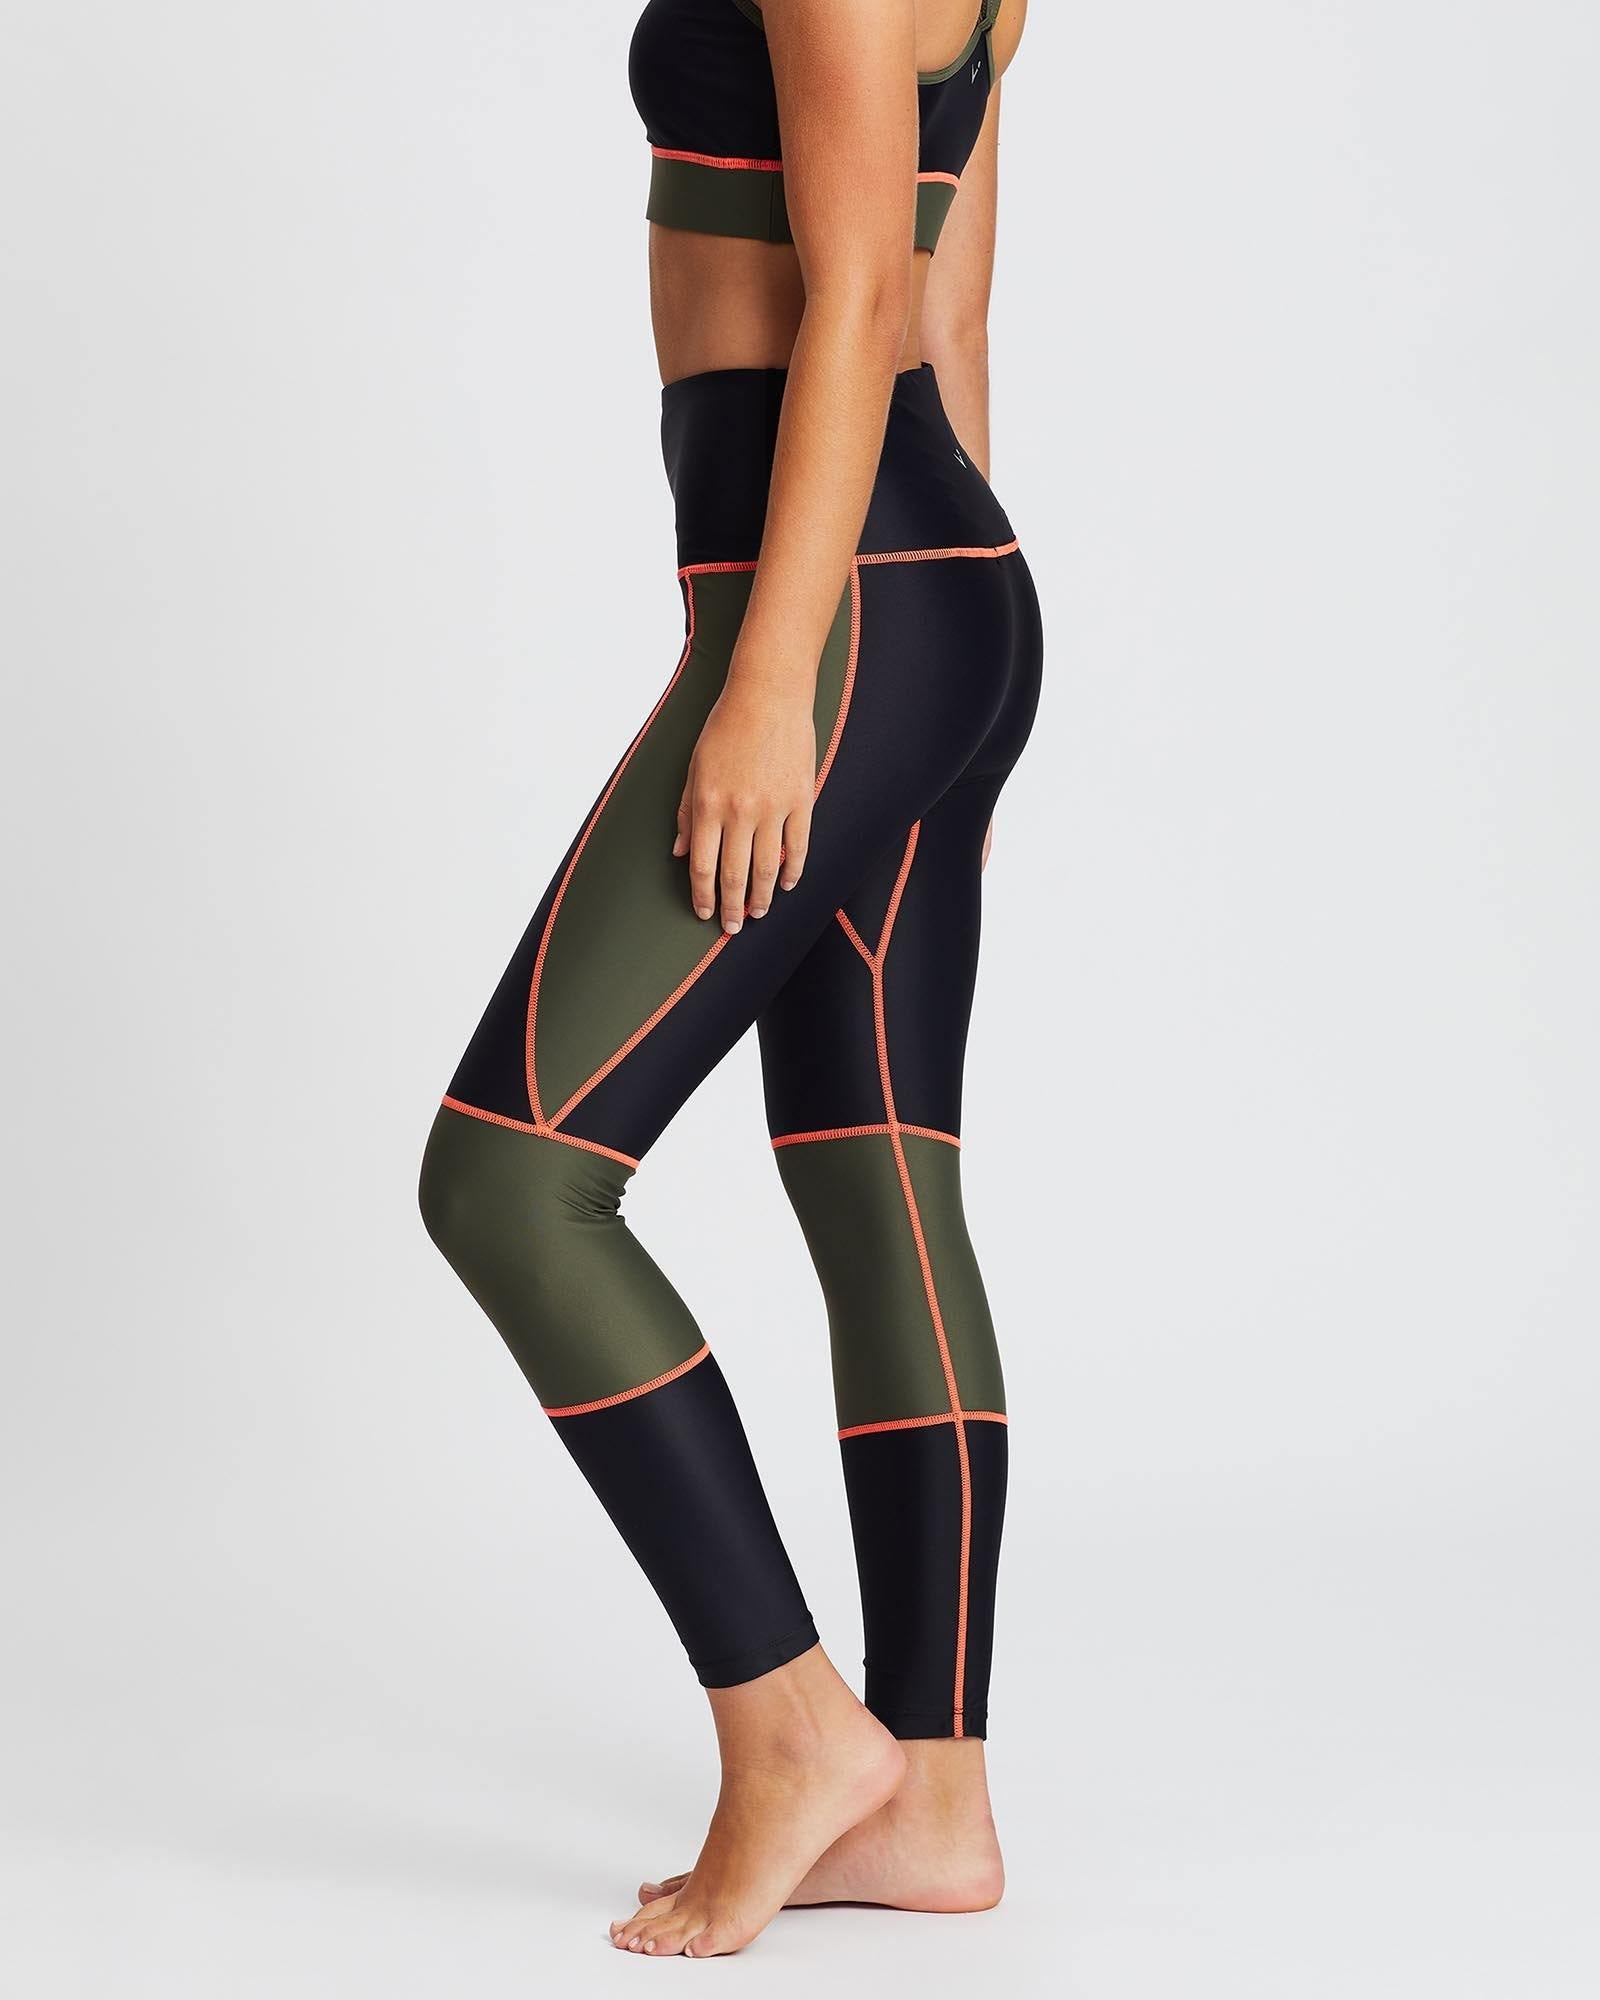 Sergeant Olive GRACILIS 7/8 HIGH WAISTED LEGGING Black WITH CONTRAST PANELS in dark Olive and contrast orange stitching, side VIEW for pilates, barre, yoga, dance, gym-workouts